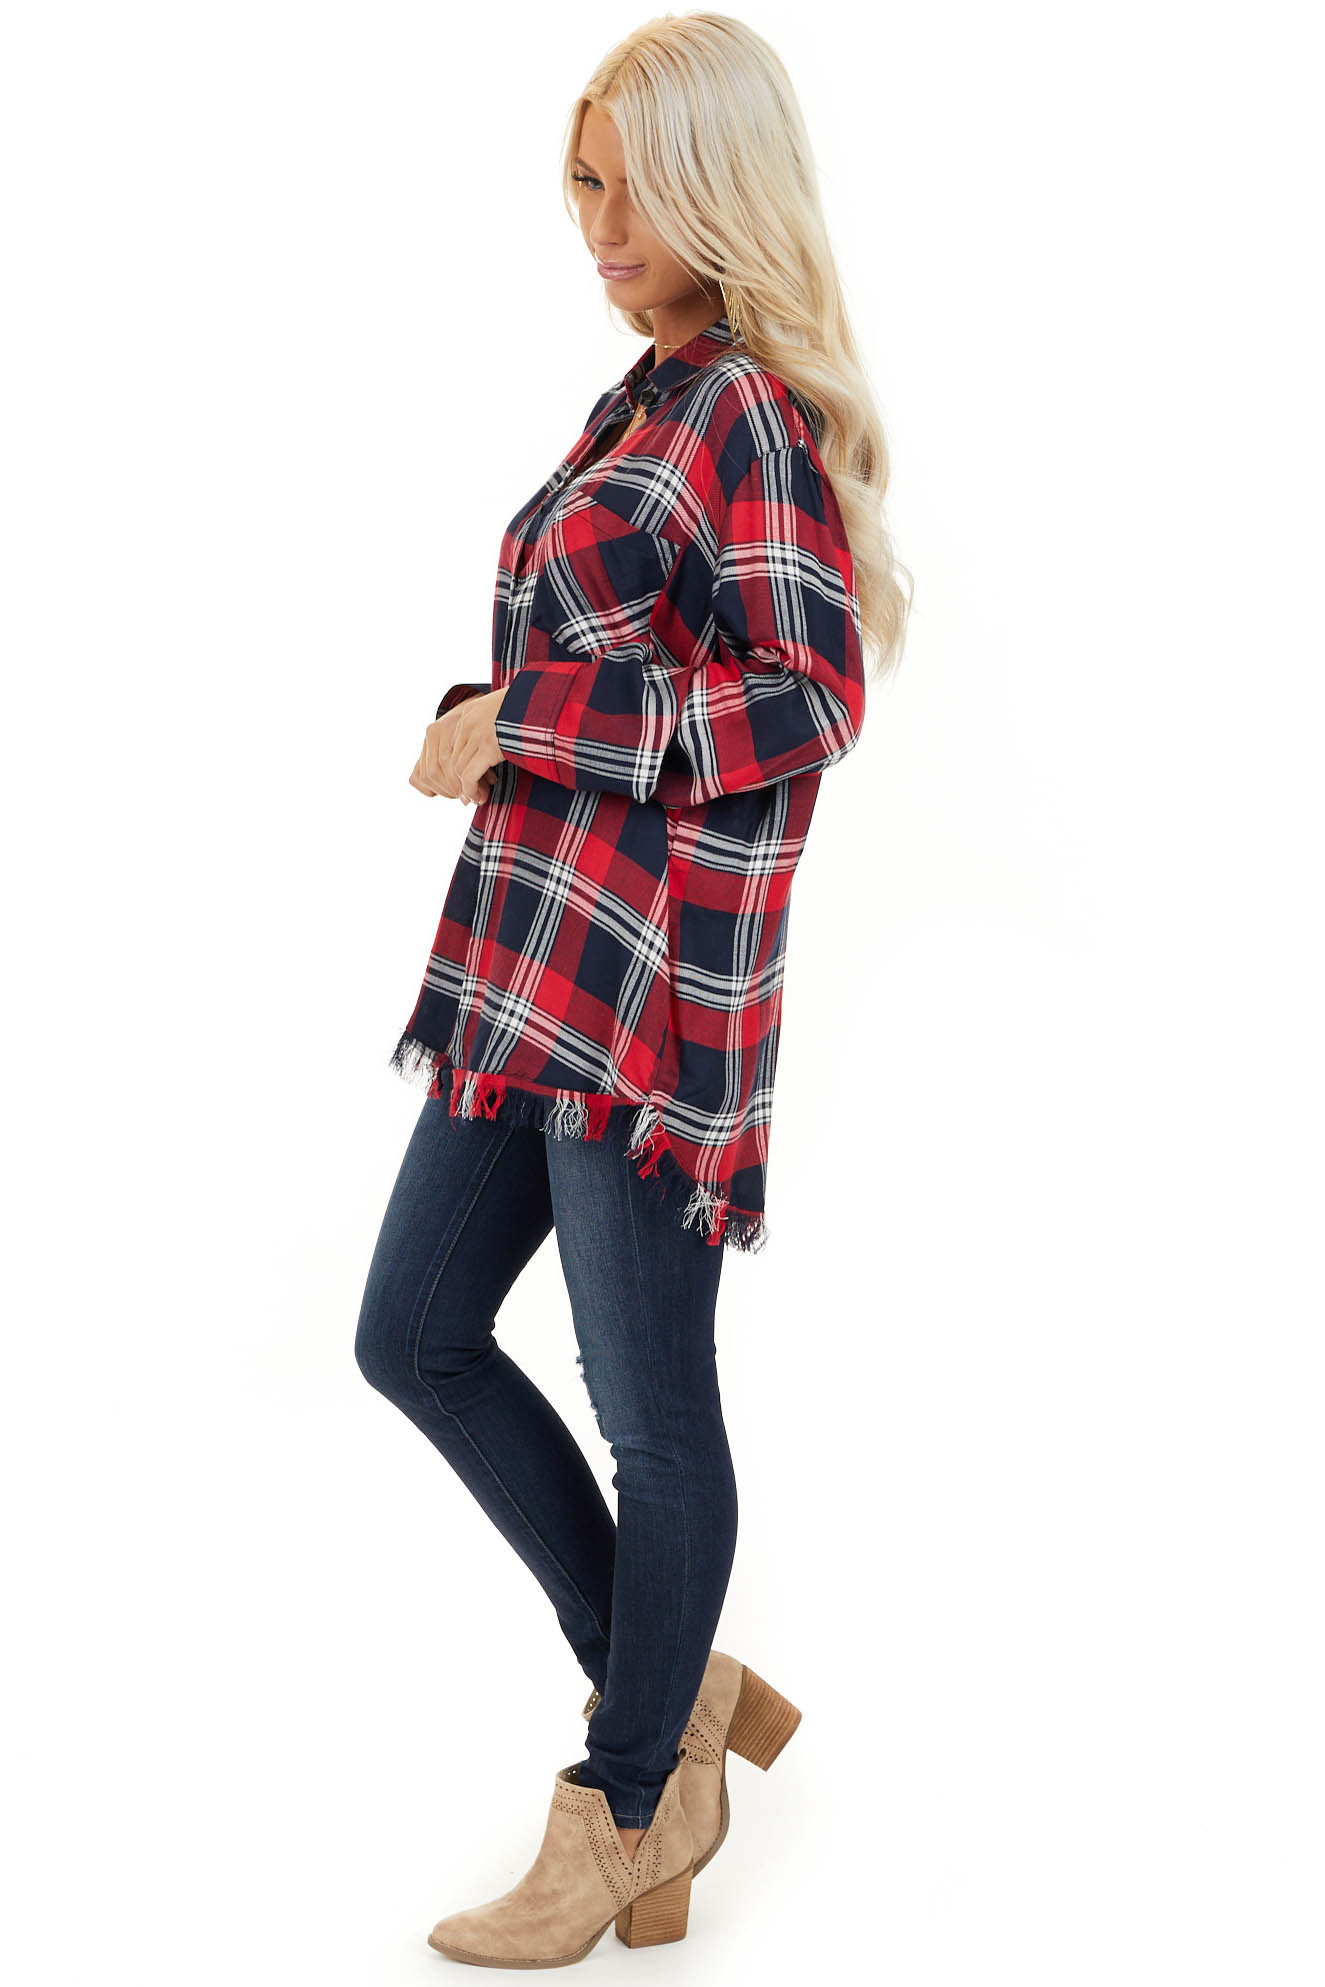 Lipstick Red and Navy Plaid Button Up Top with Long Sleeves side full body